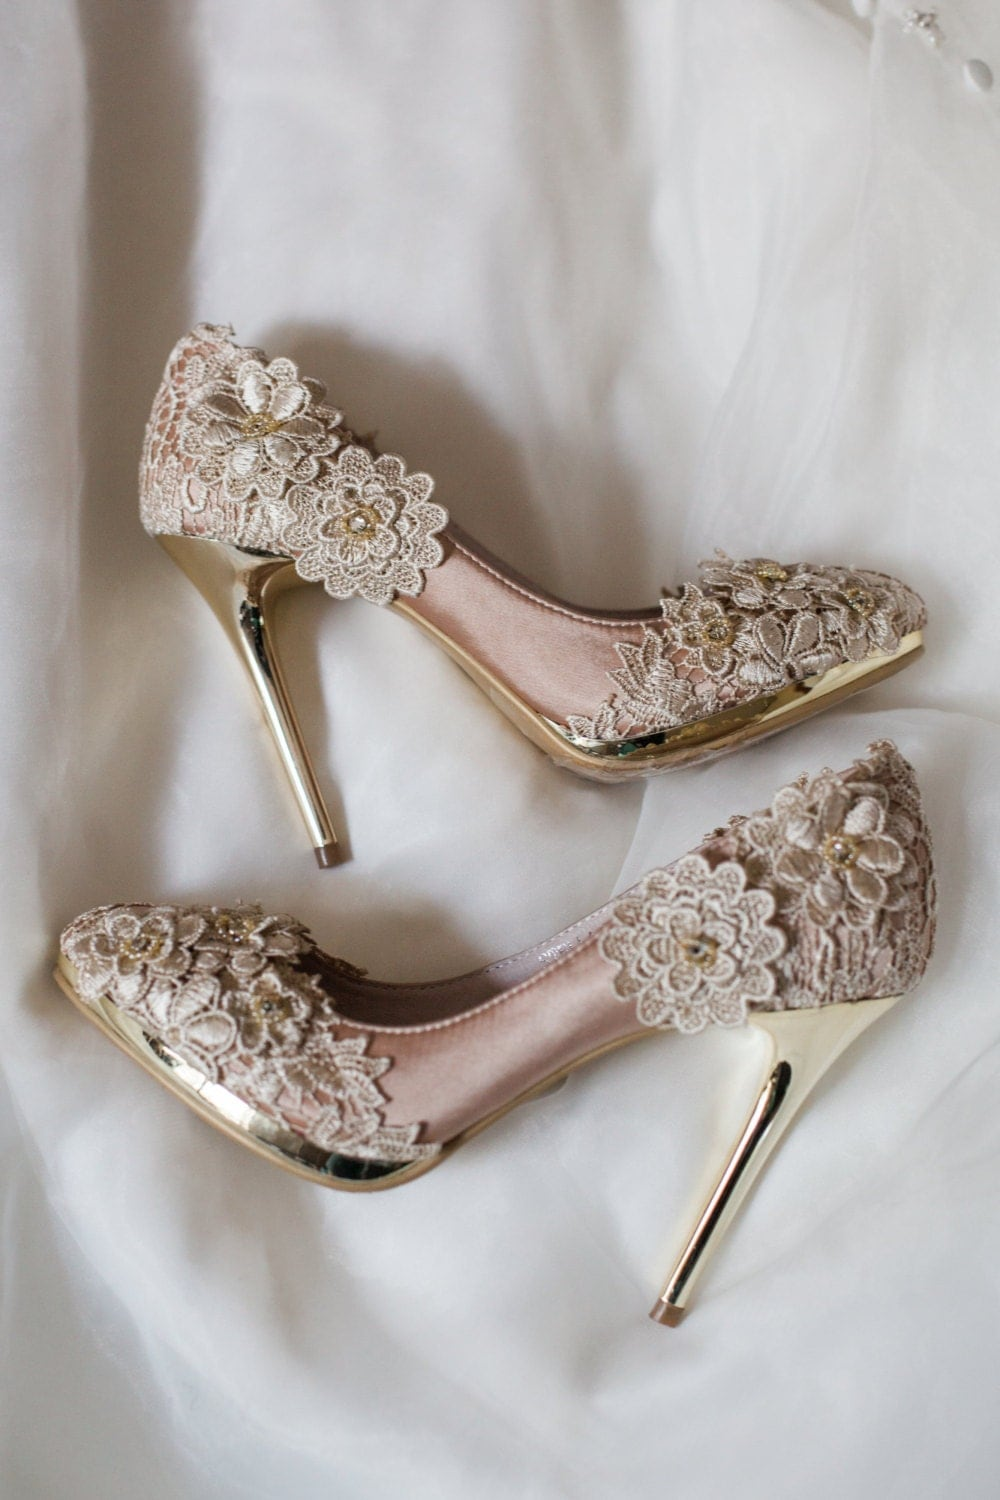 SALE Vintage Flower Lace Wedding Shoes With Champagne Gold